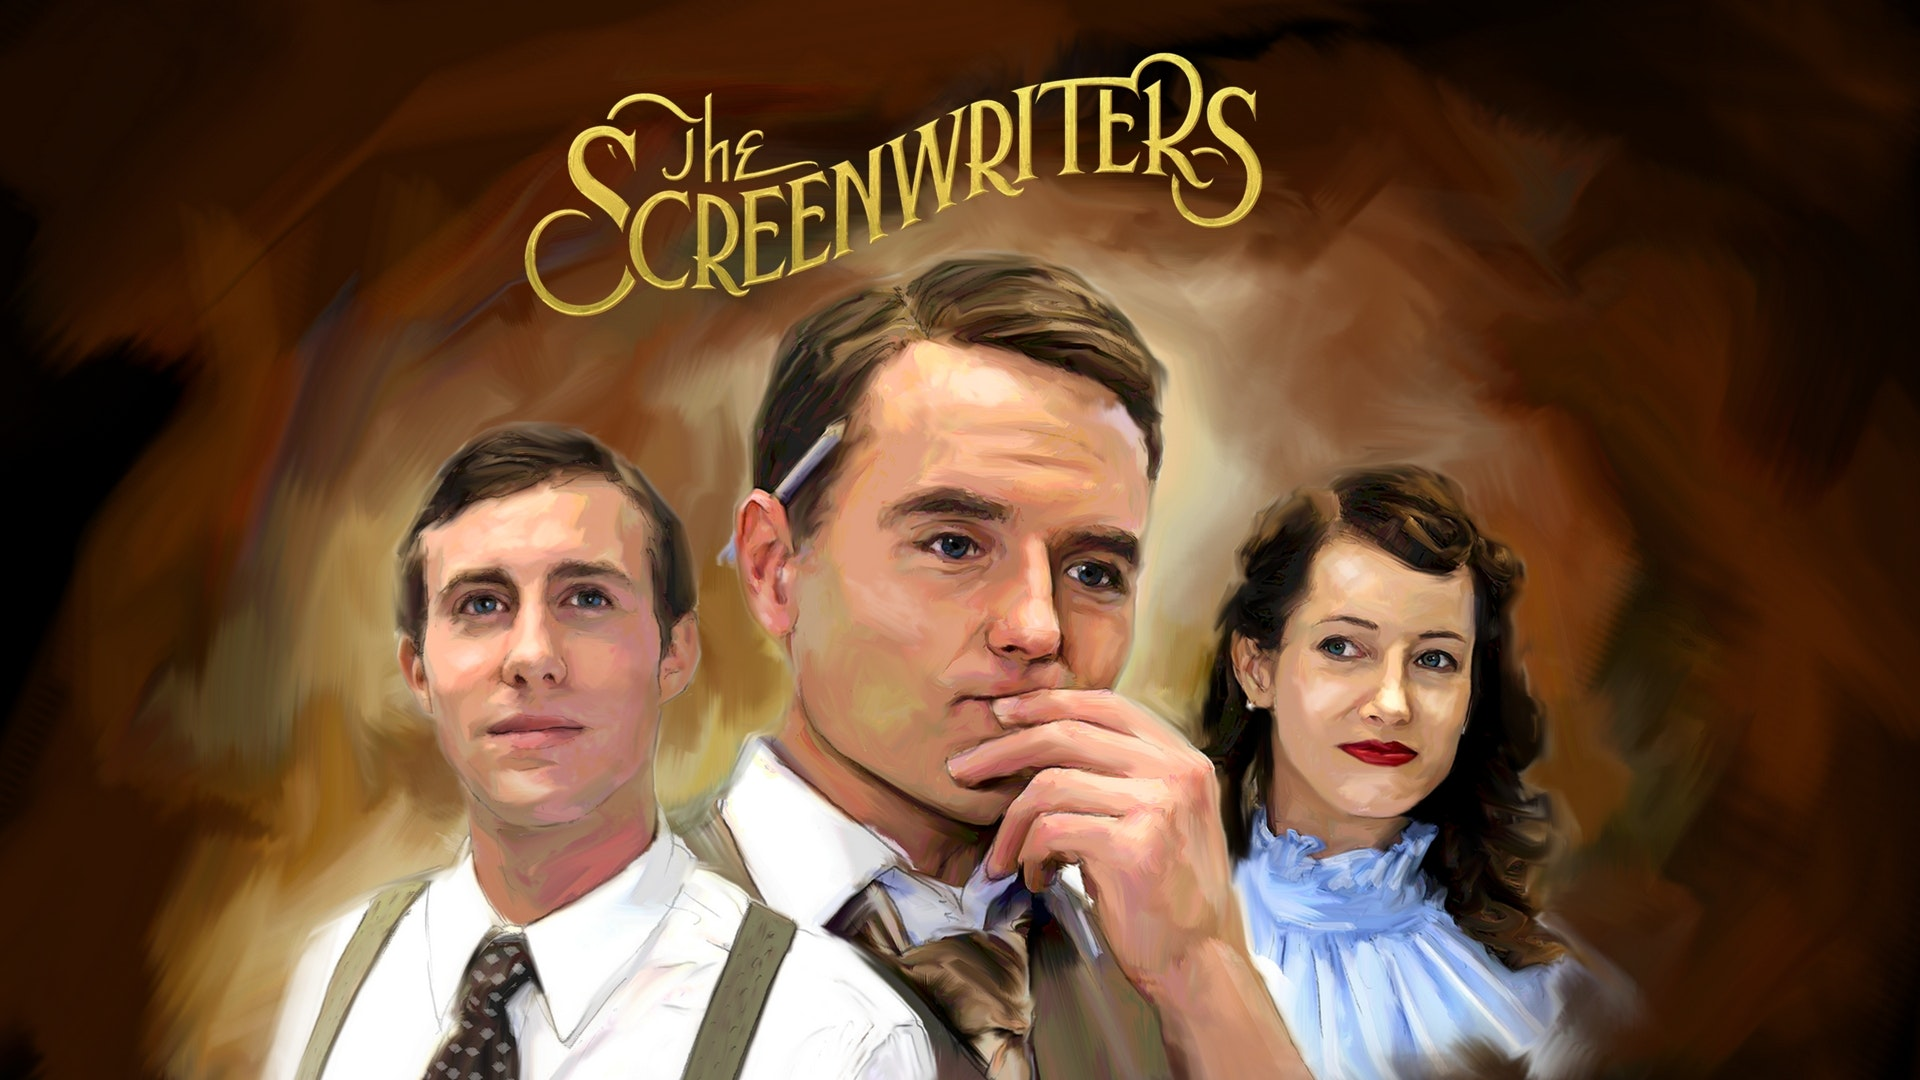 The Screenwriters